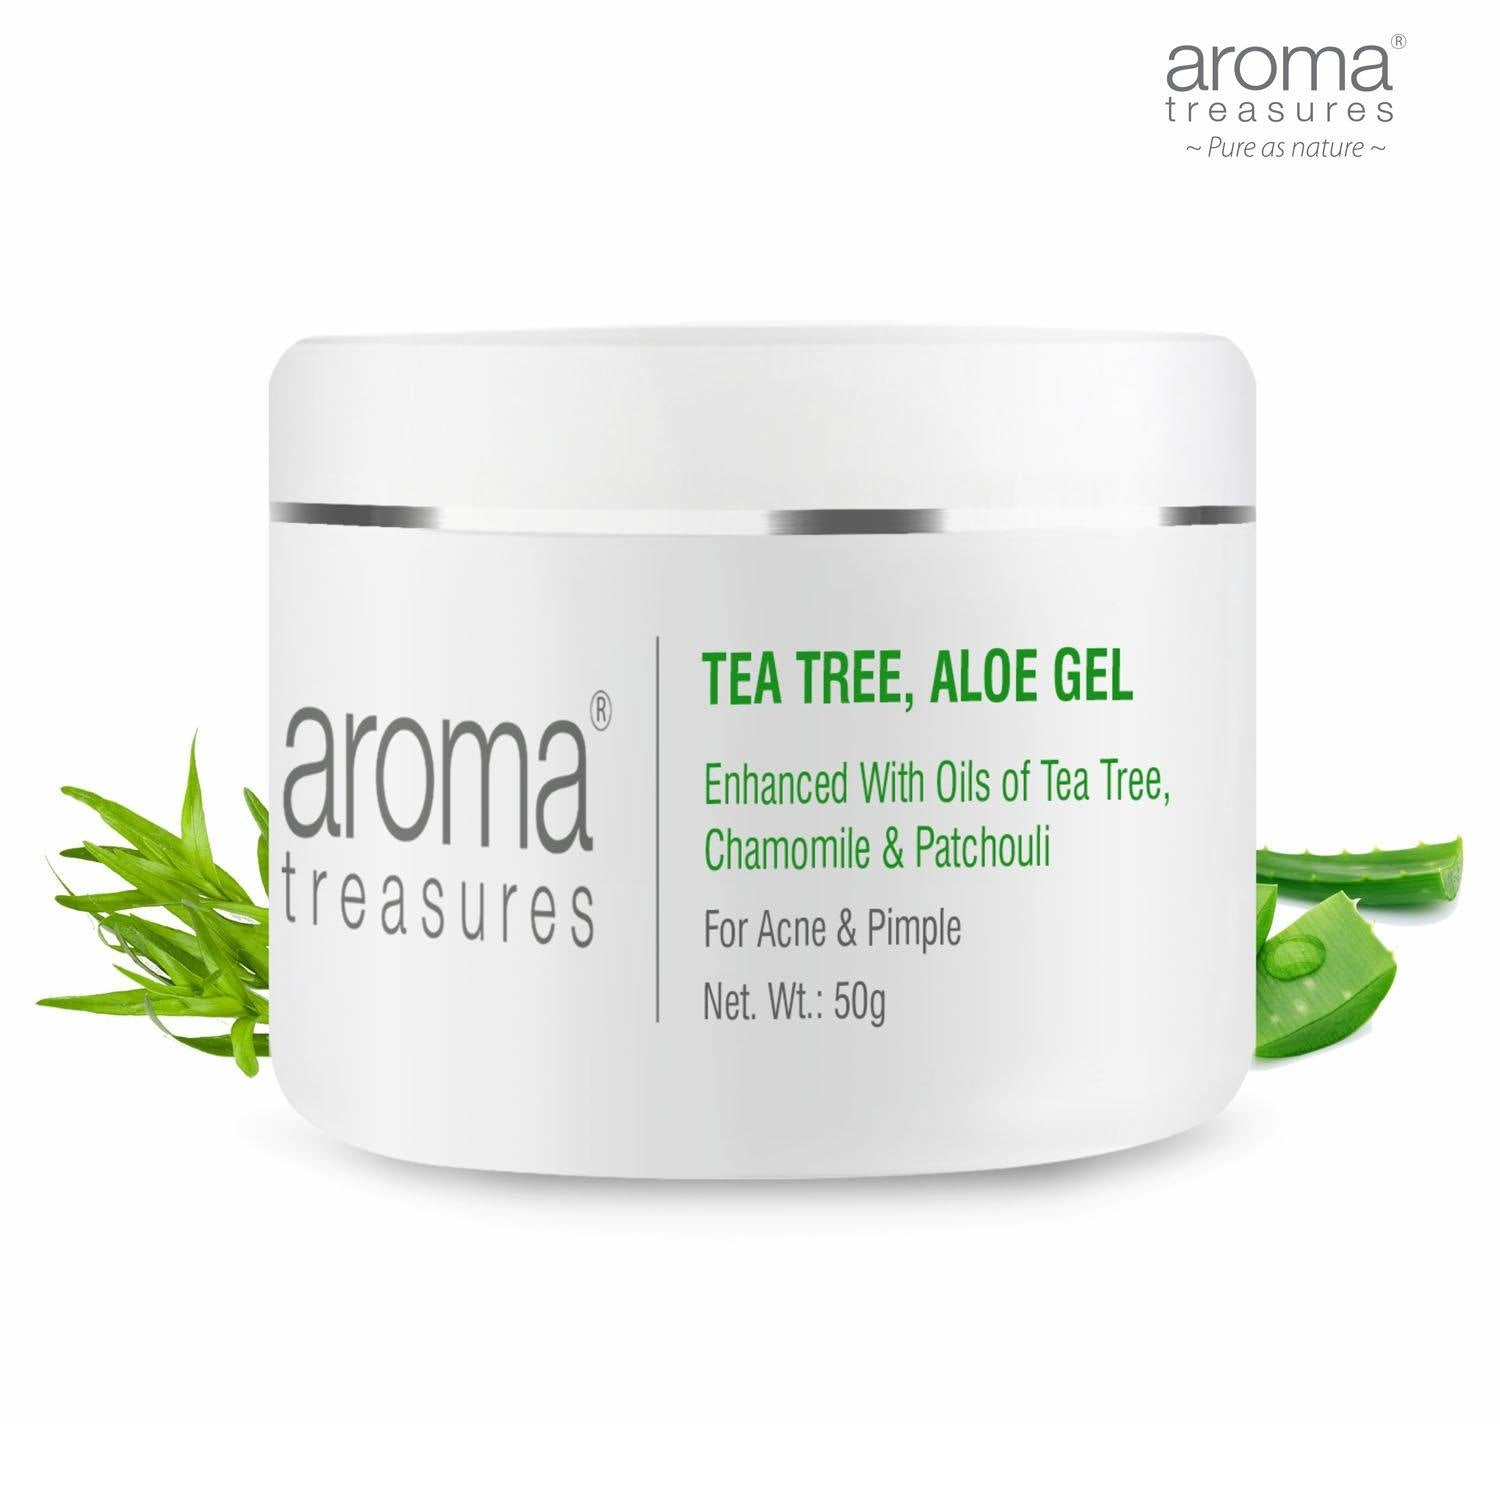 Tea Tree Aloe Gel to clear Acne & Pimple, making the skin clean, smooth & soft. (50g )